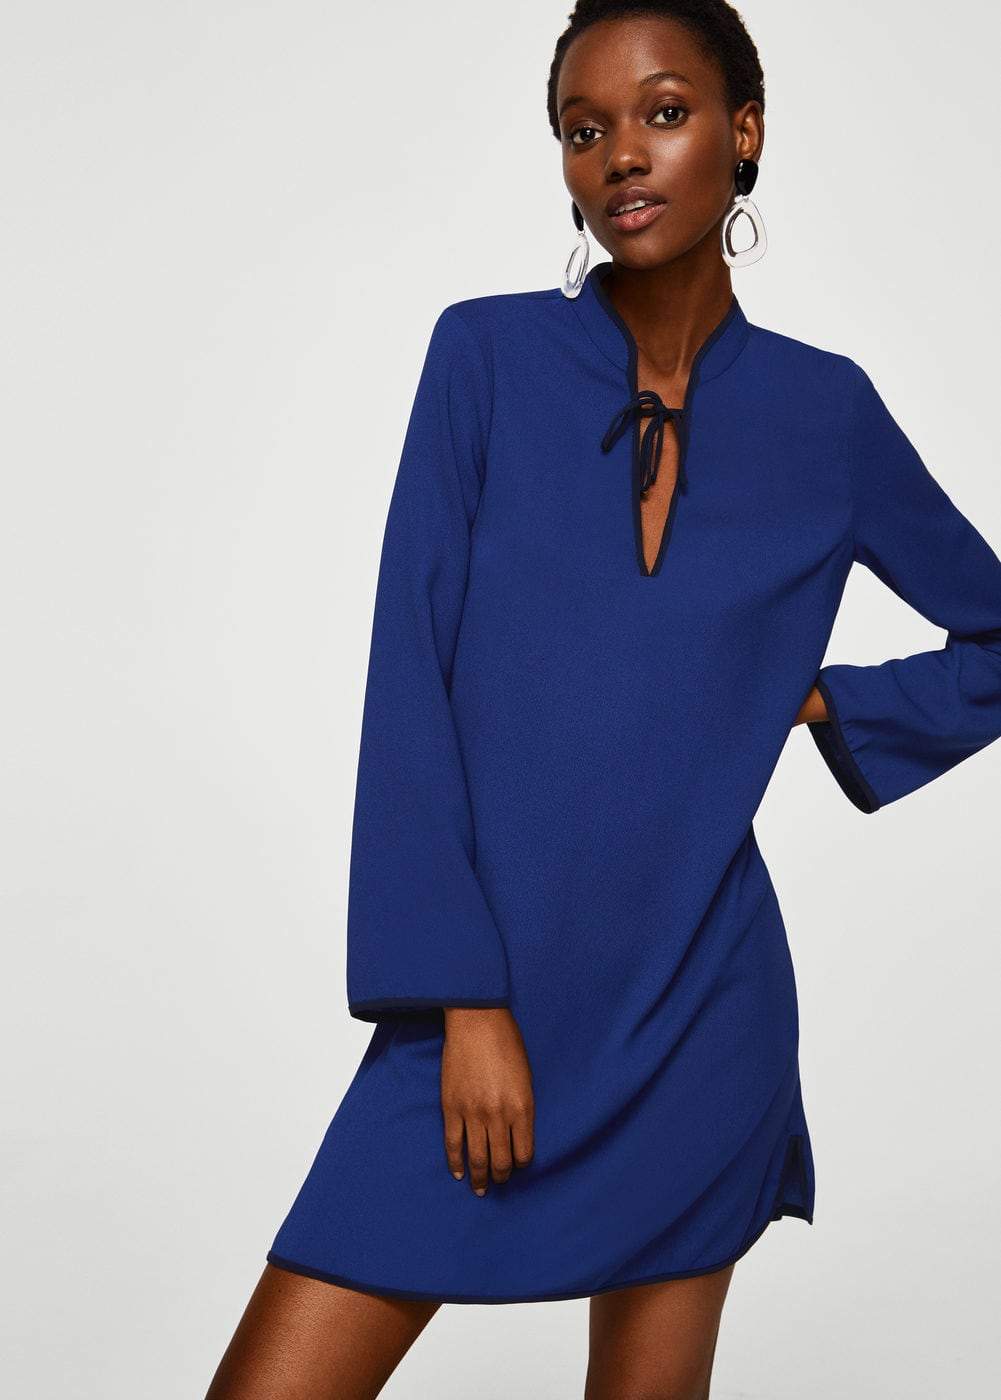 V-neckline dress | Hermosaz